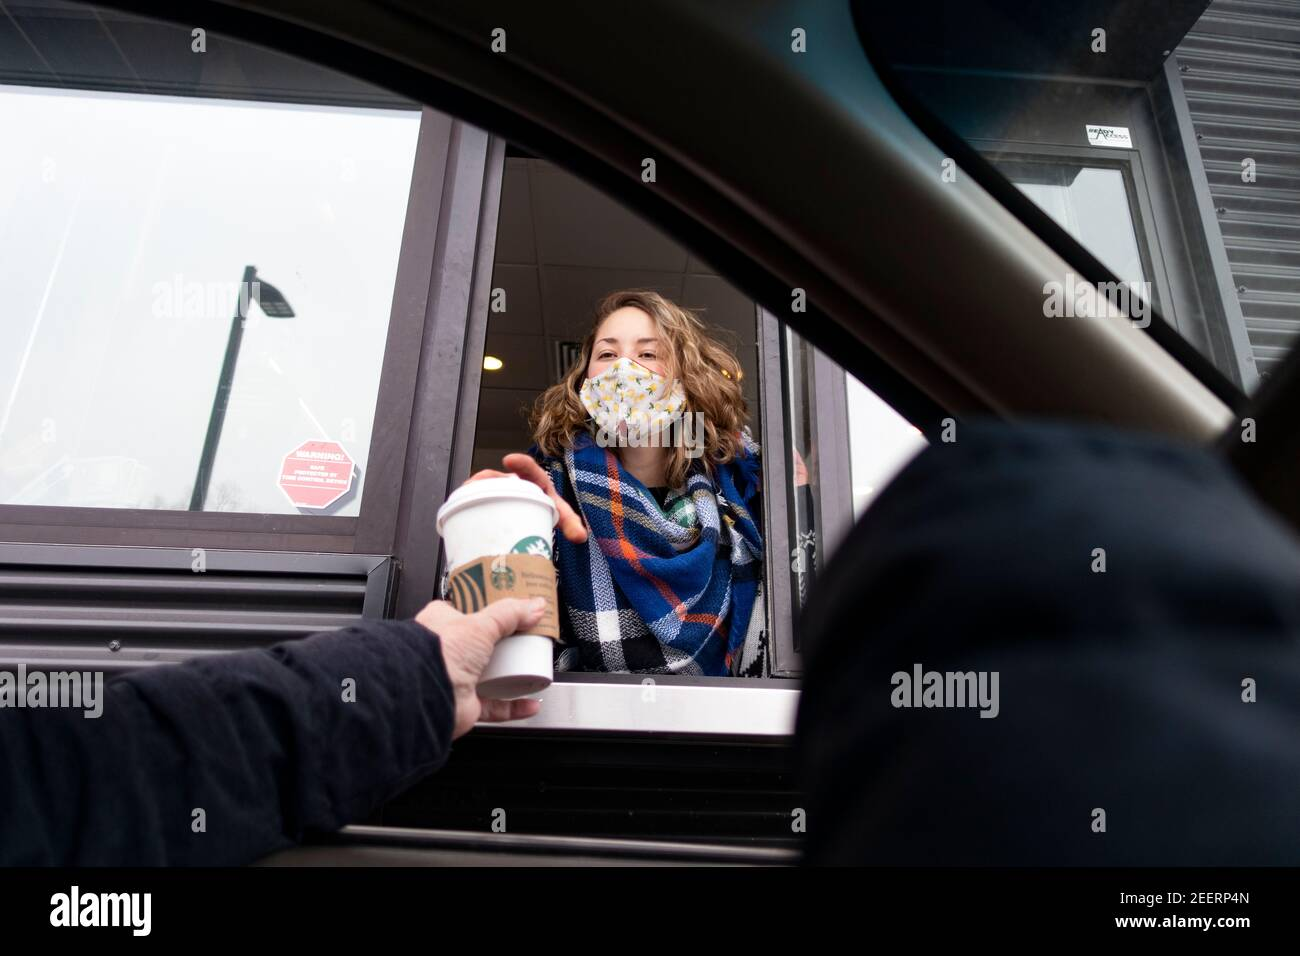 Masked Starbucks drive-thru coffee server handing a coffee to a customer in the car during the Covid Pandemic. St Paul Minnesota MN USA Stock Photo